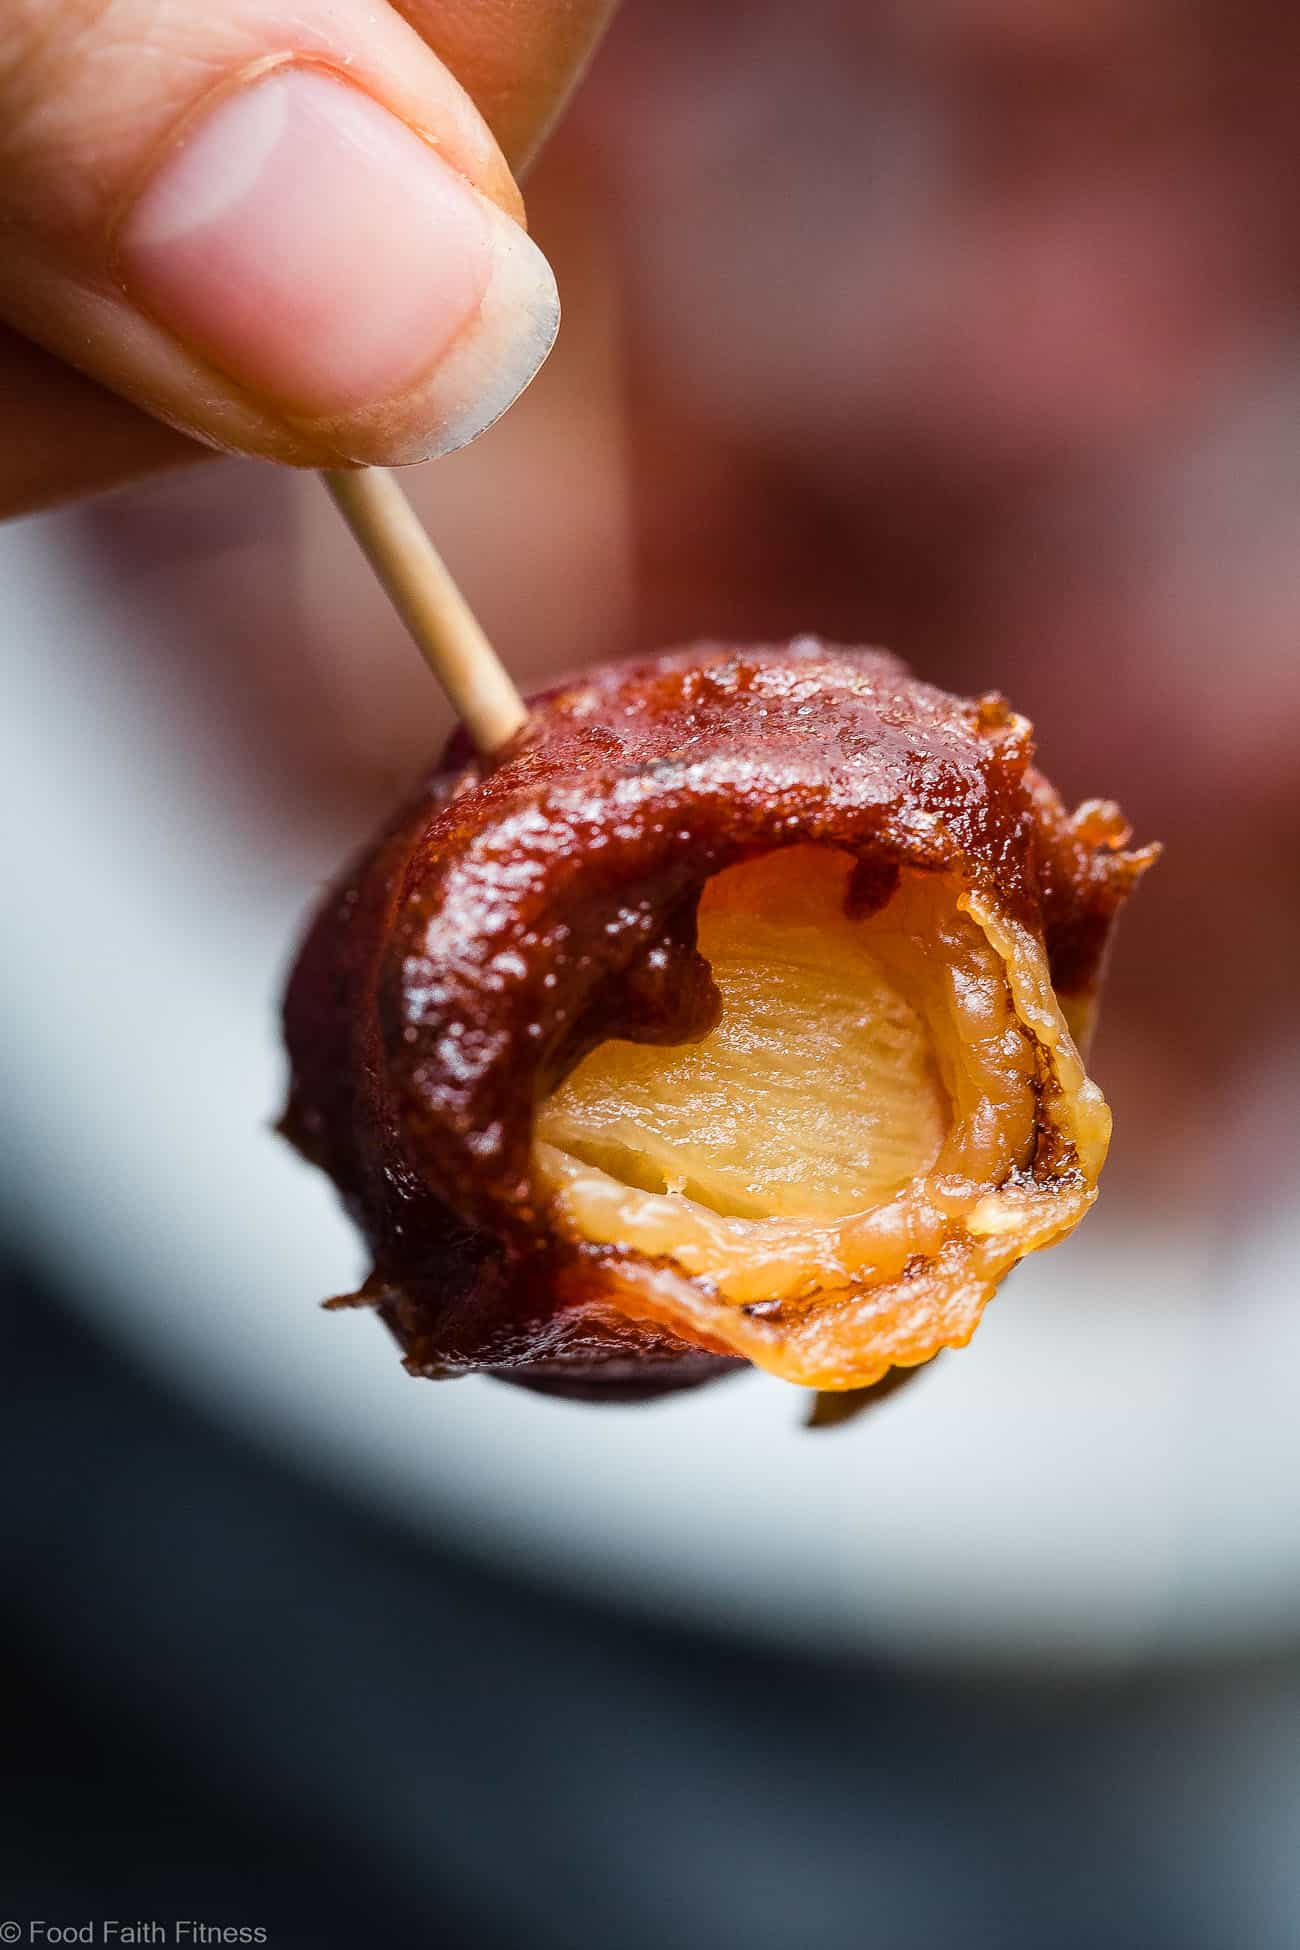 Whole30 Sweet and Sour Bacon Wrapped Pineapple Bites - Salty, sweet and so addicting! An easy healthy and paleo friendly appetizer that you would never believe is gluten/grain/dairy/sugar free and only 35 calories a bite! | Foodfaithfitness.com | @Foodfaithfit